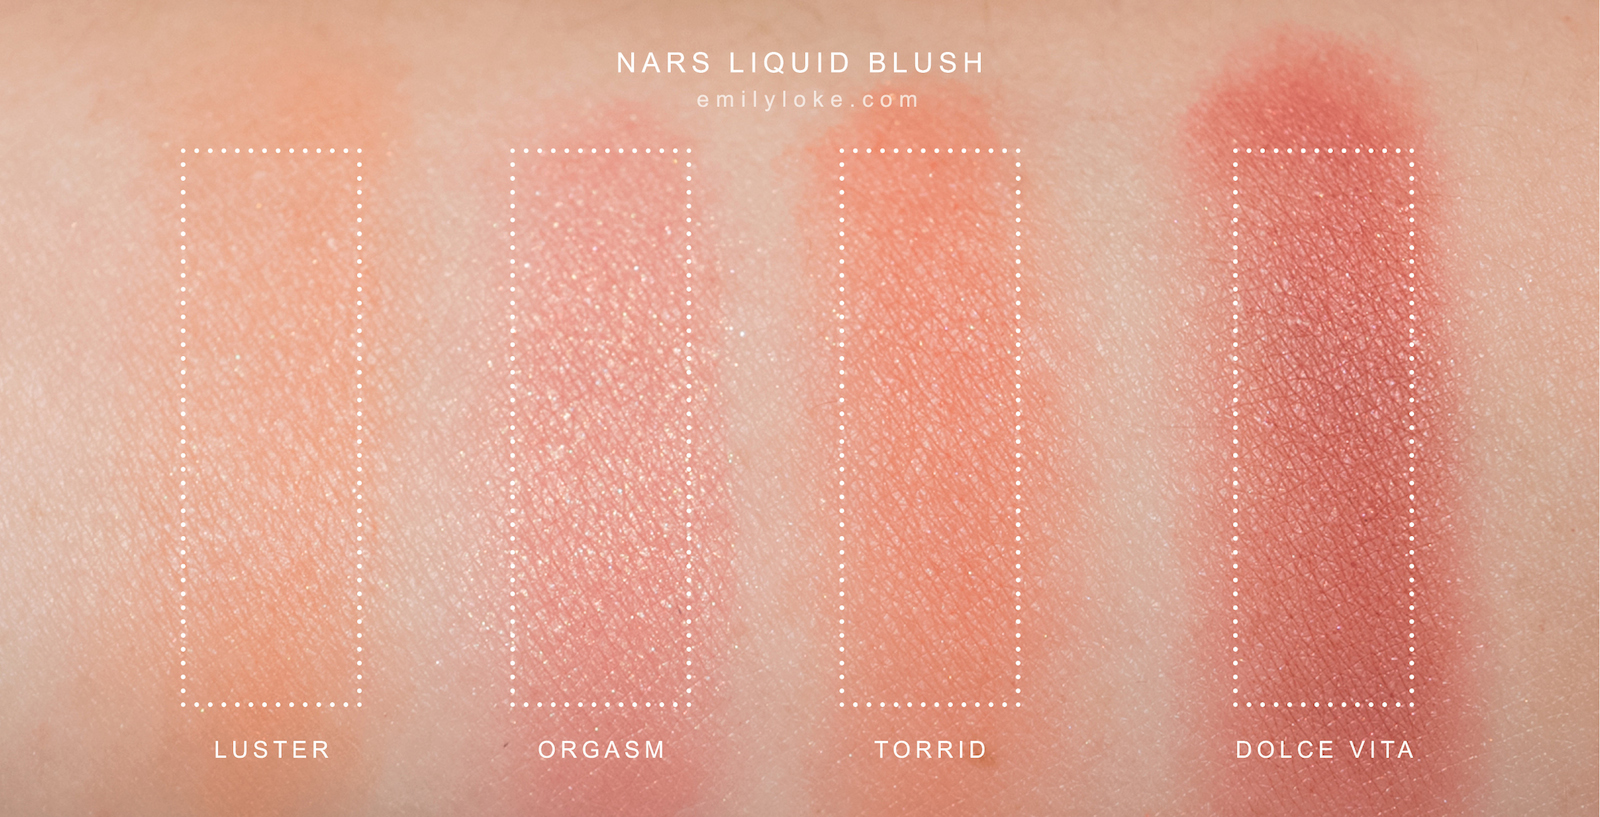 nars liquid blush swatches